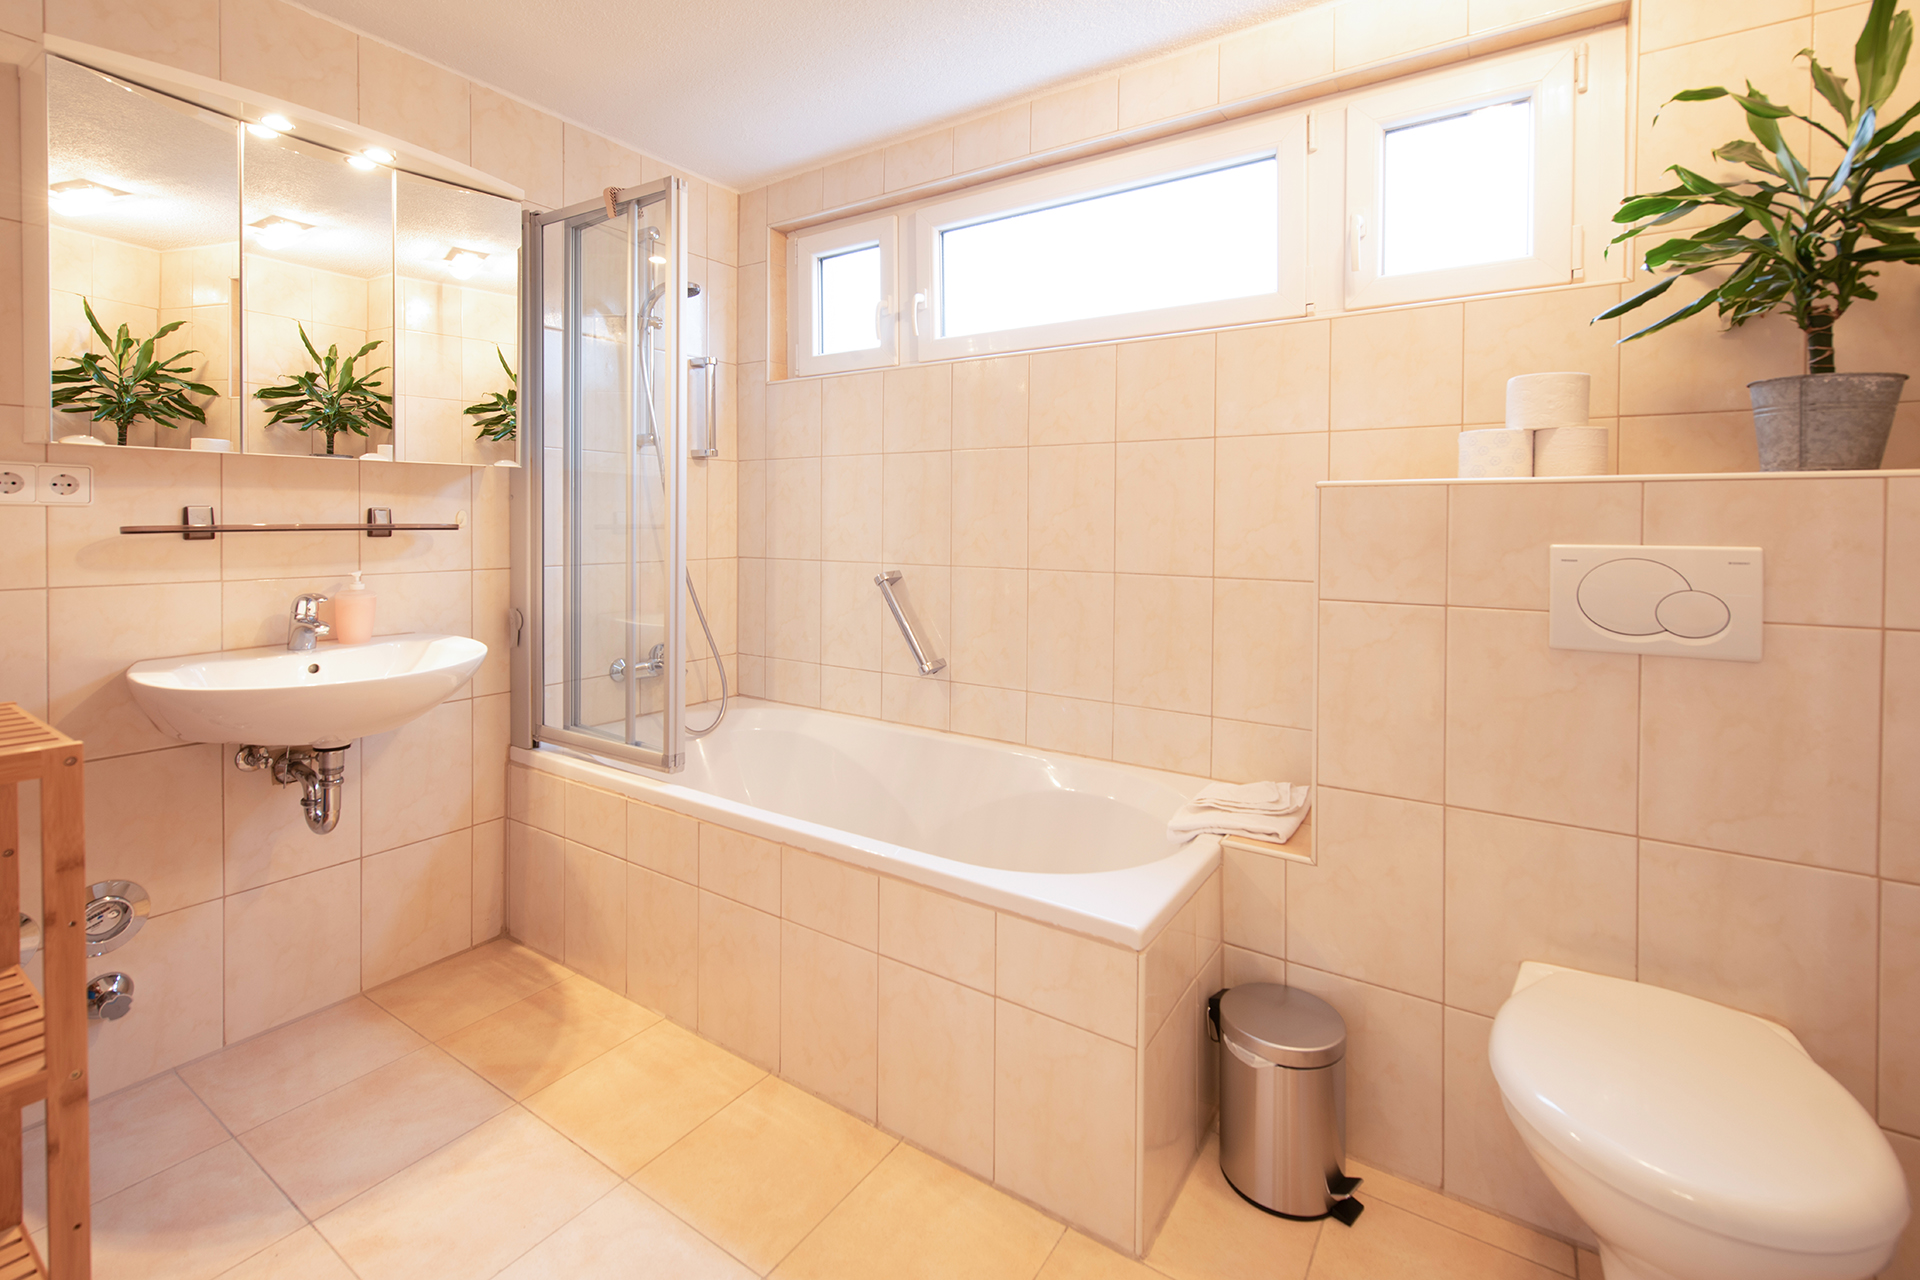 Holiday apartments on Lake Constance: Markdorf - Bathroom